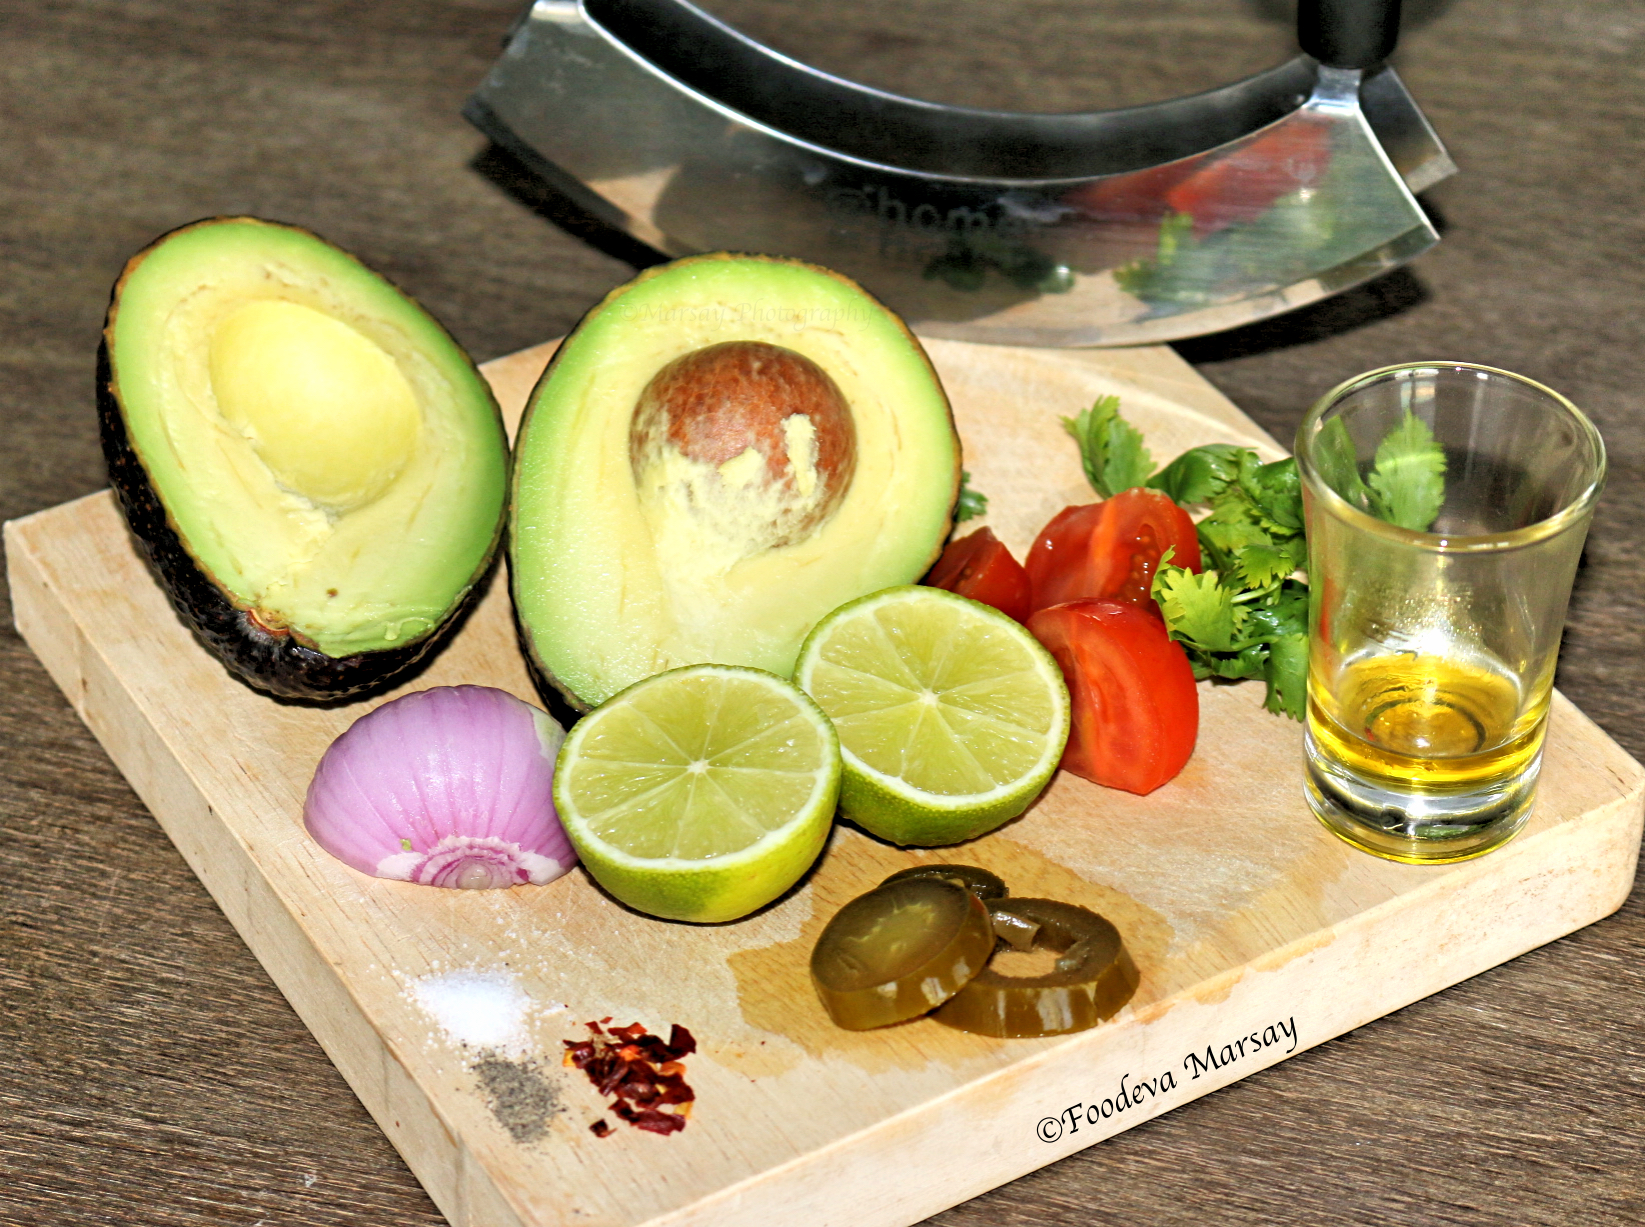 Guacomole raw ingredients